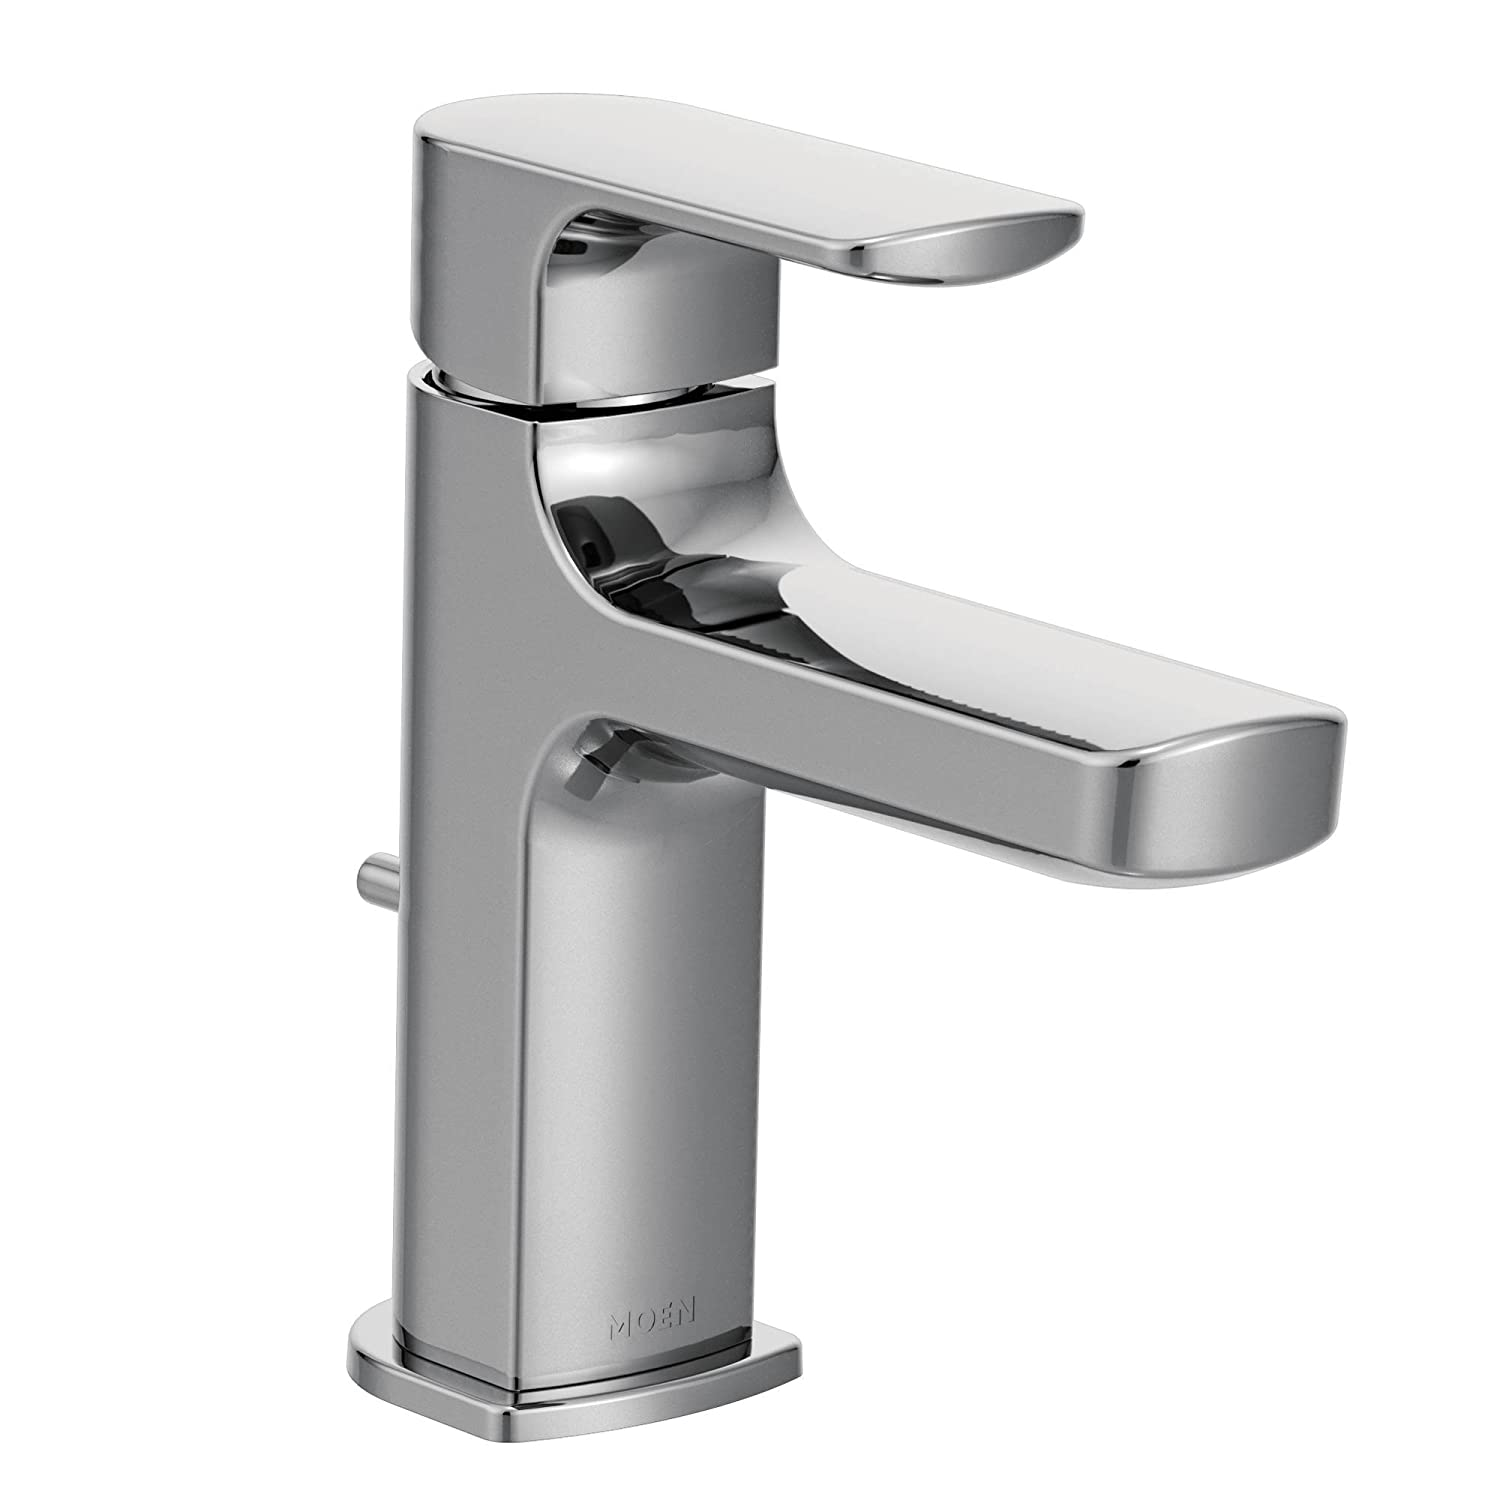 Moen 6900 Rizon One-Handle Low-Arc Bathroom Faucet with Drain ...